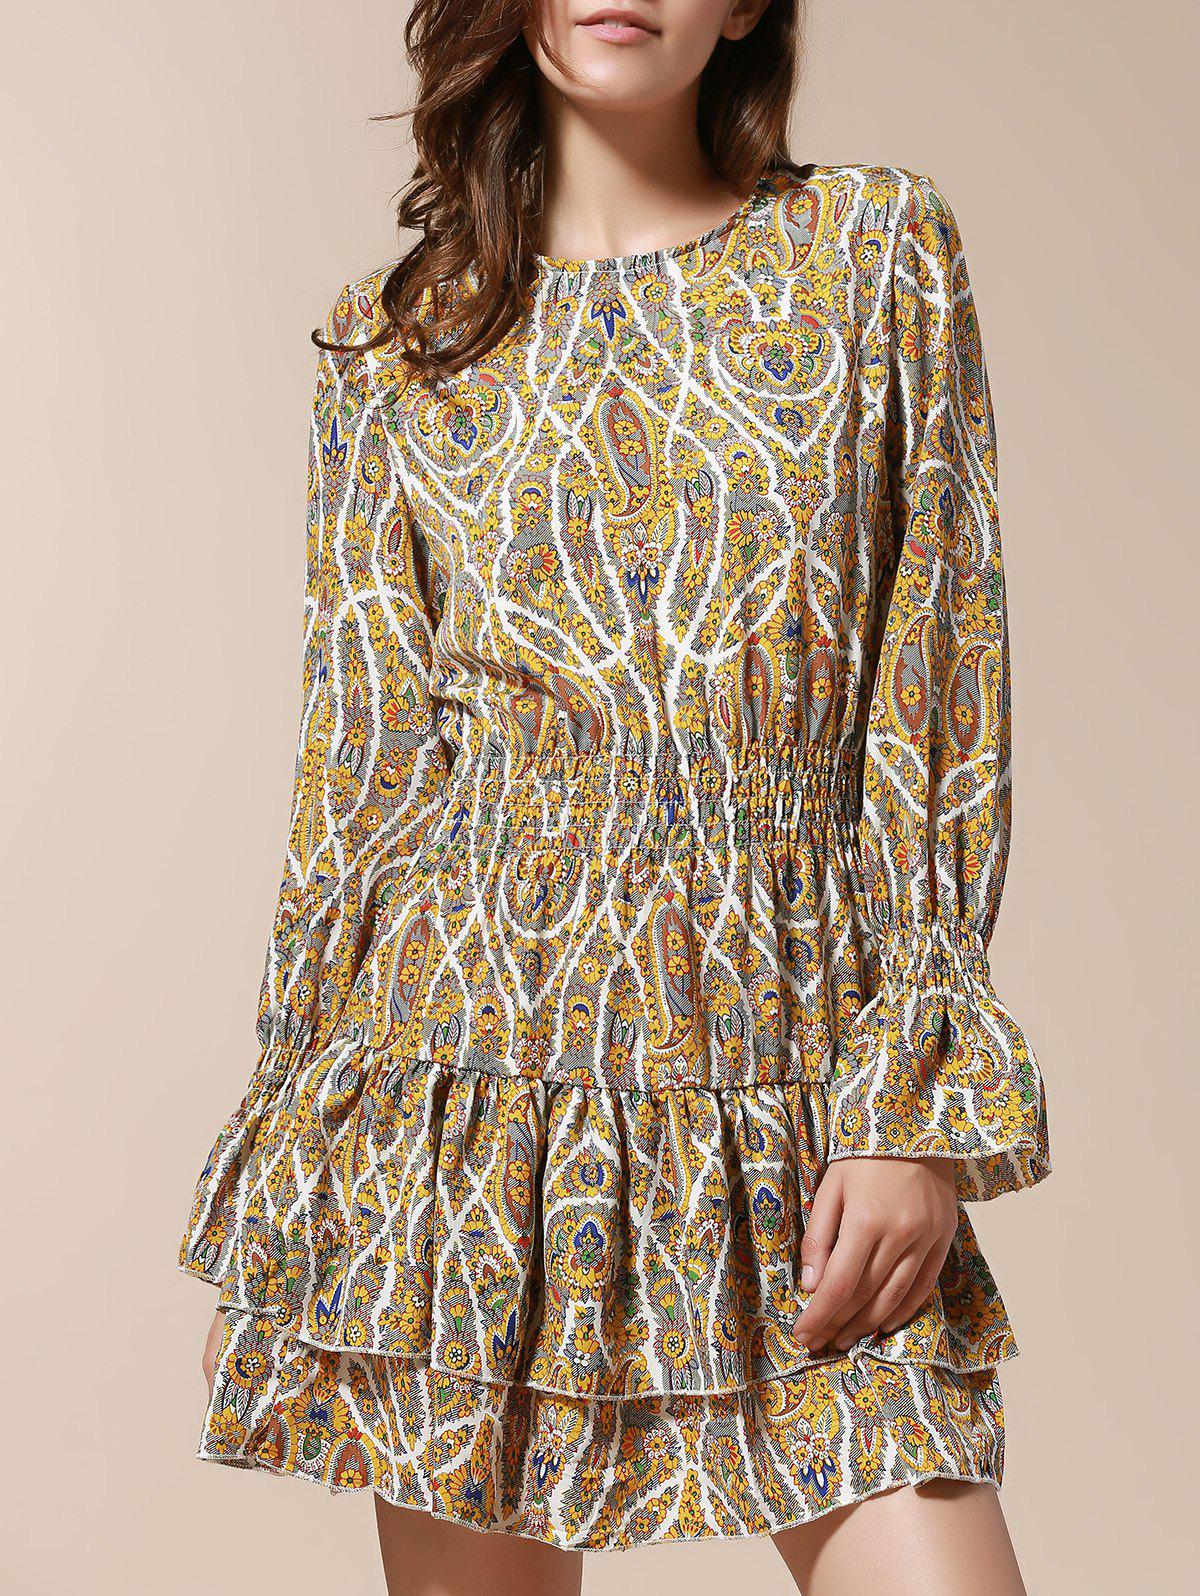 Floral Print Long Sleeve Scoop Neck Layered Hem Pullover Dress